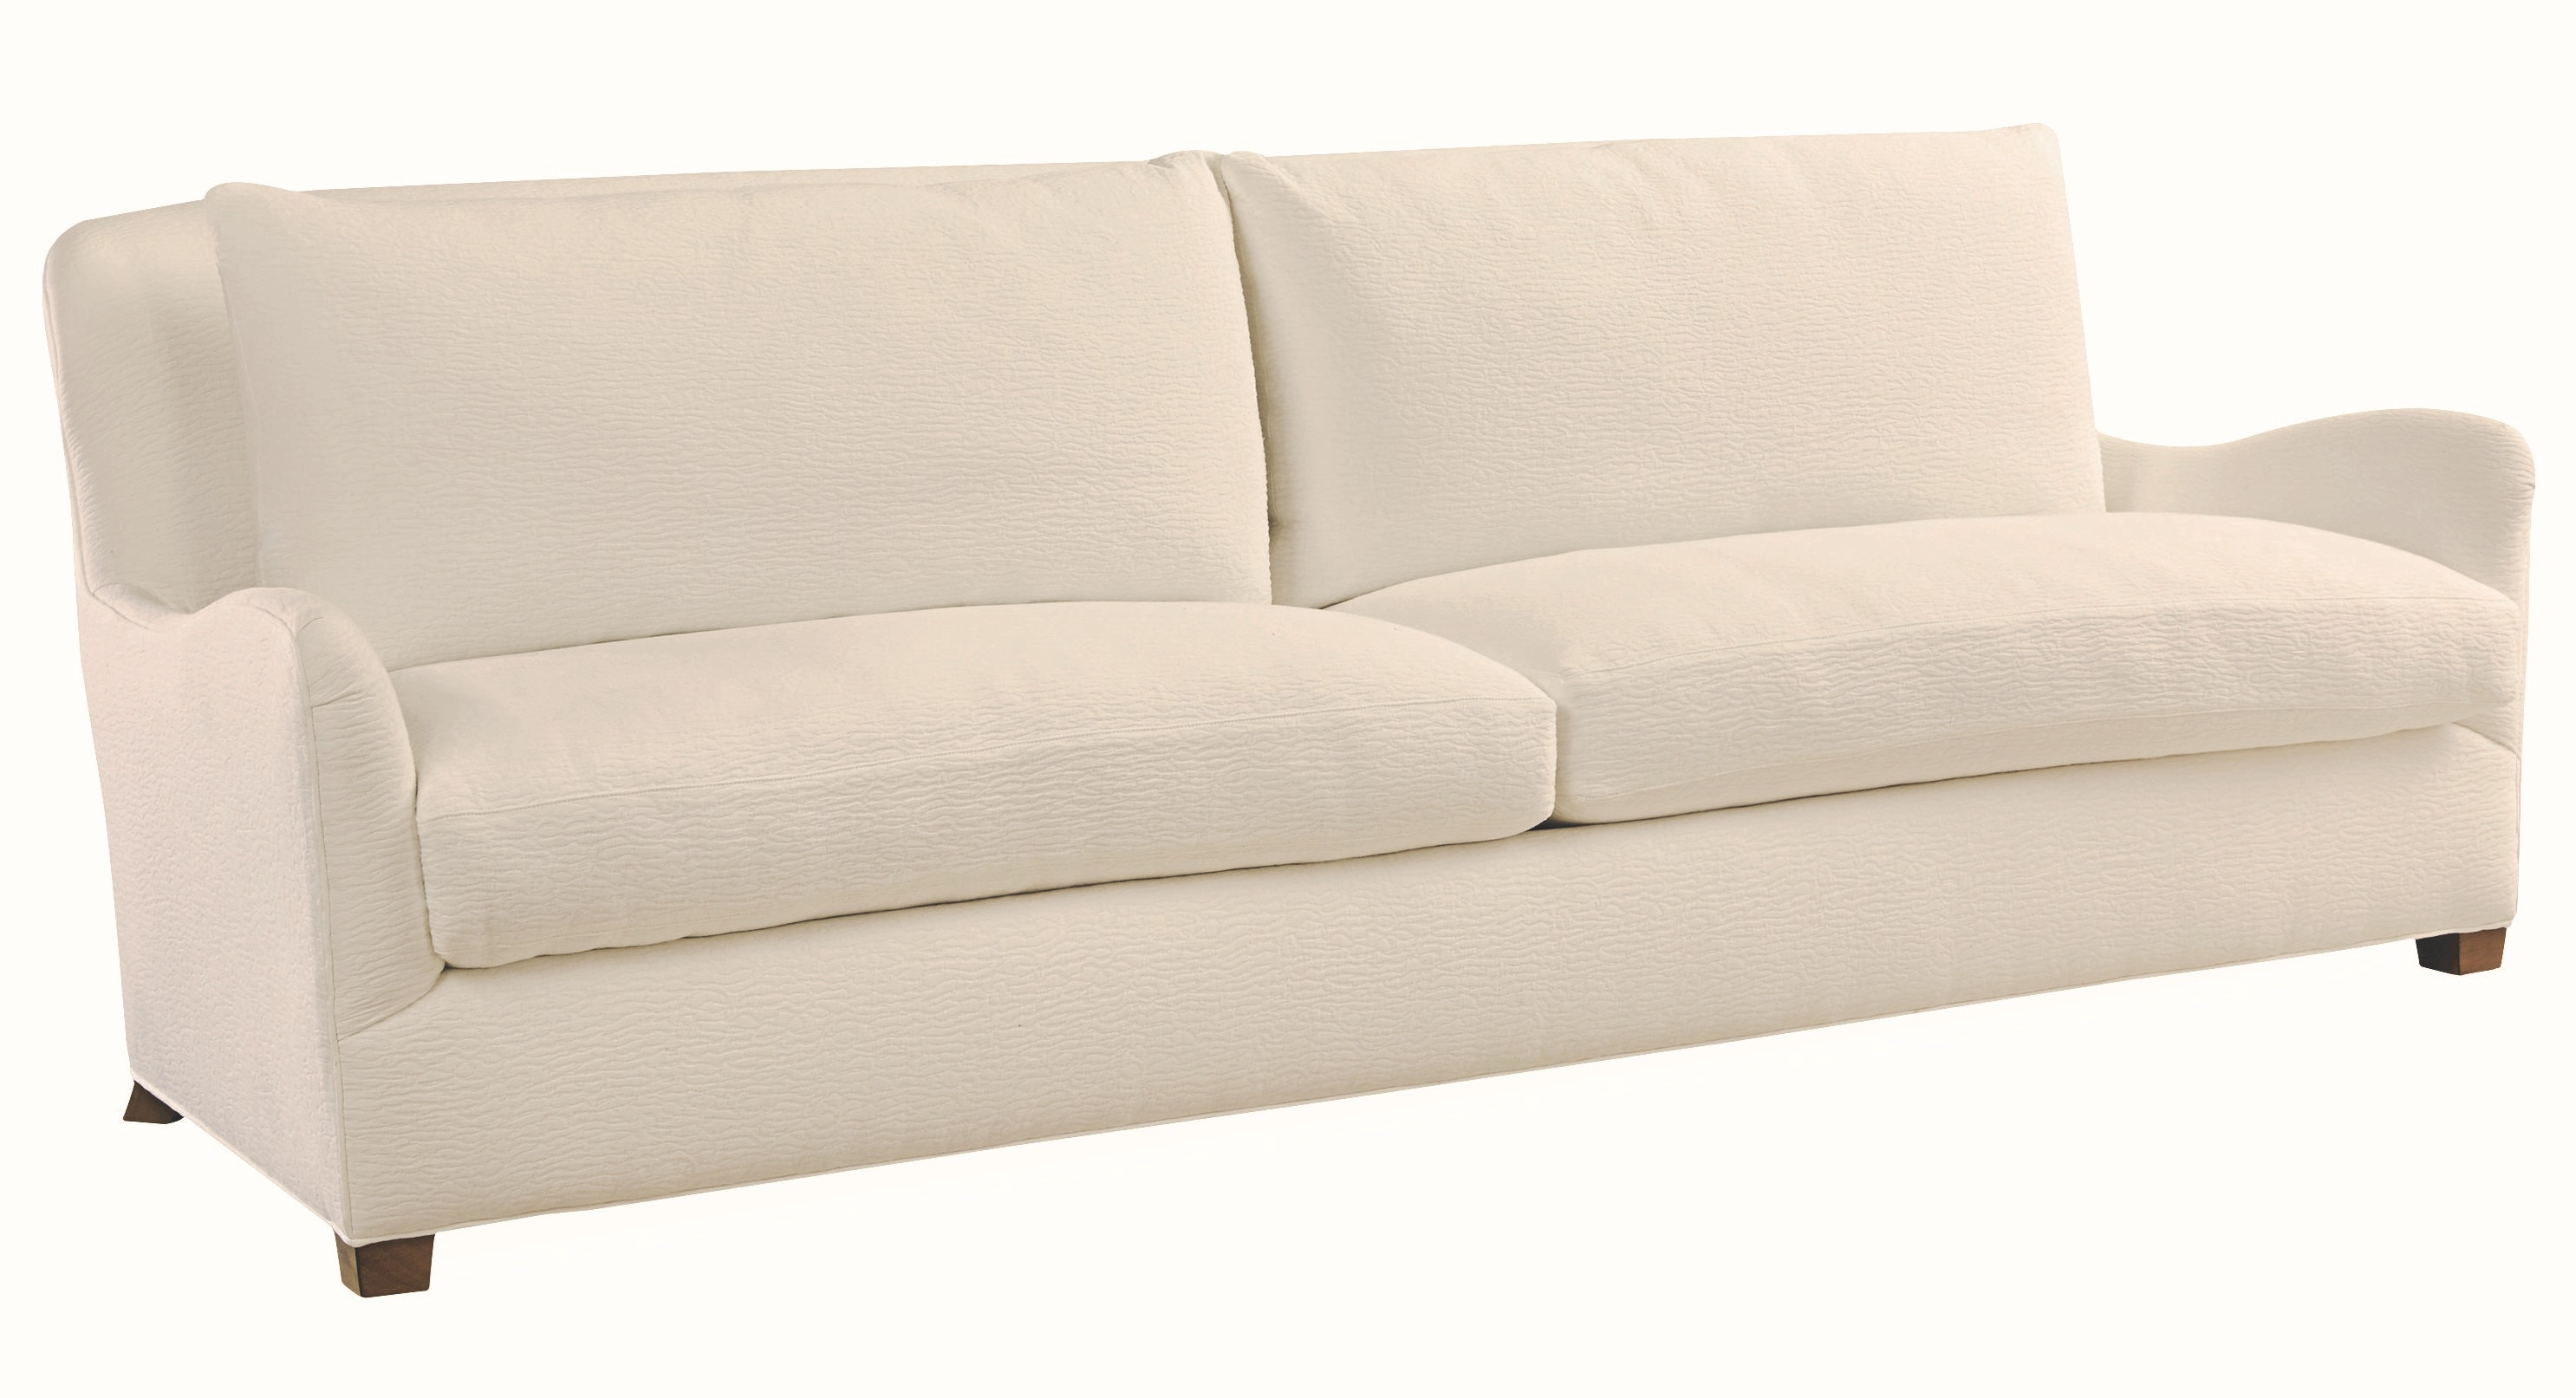 Extra Long Couch Extra Long Sofa Extra Long Sofa Suppliers And At